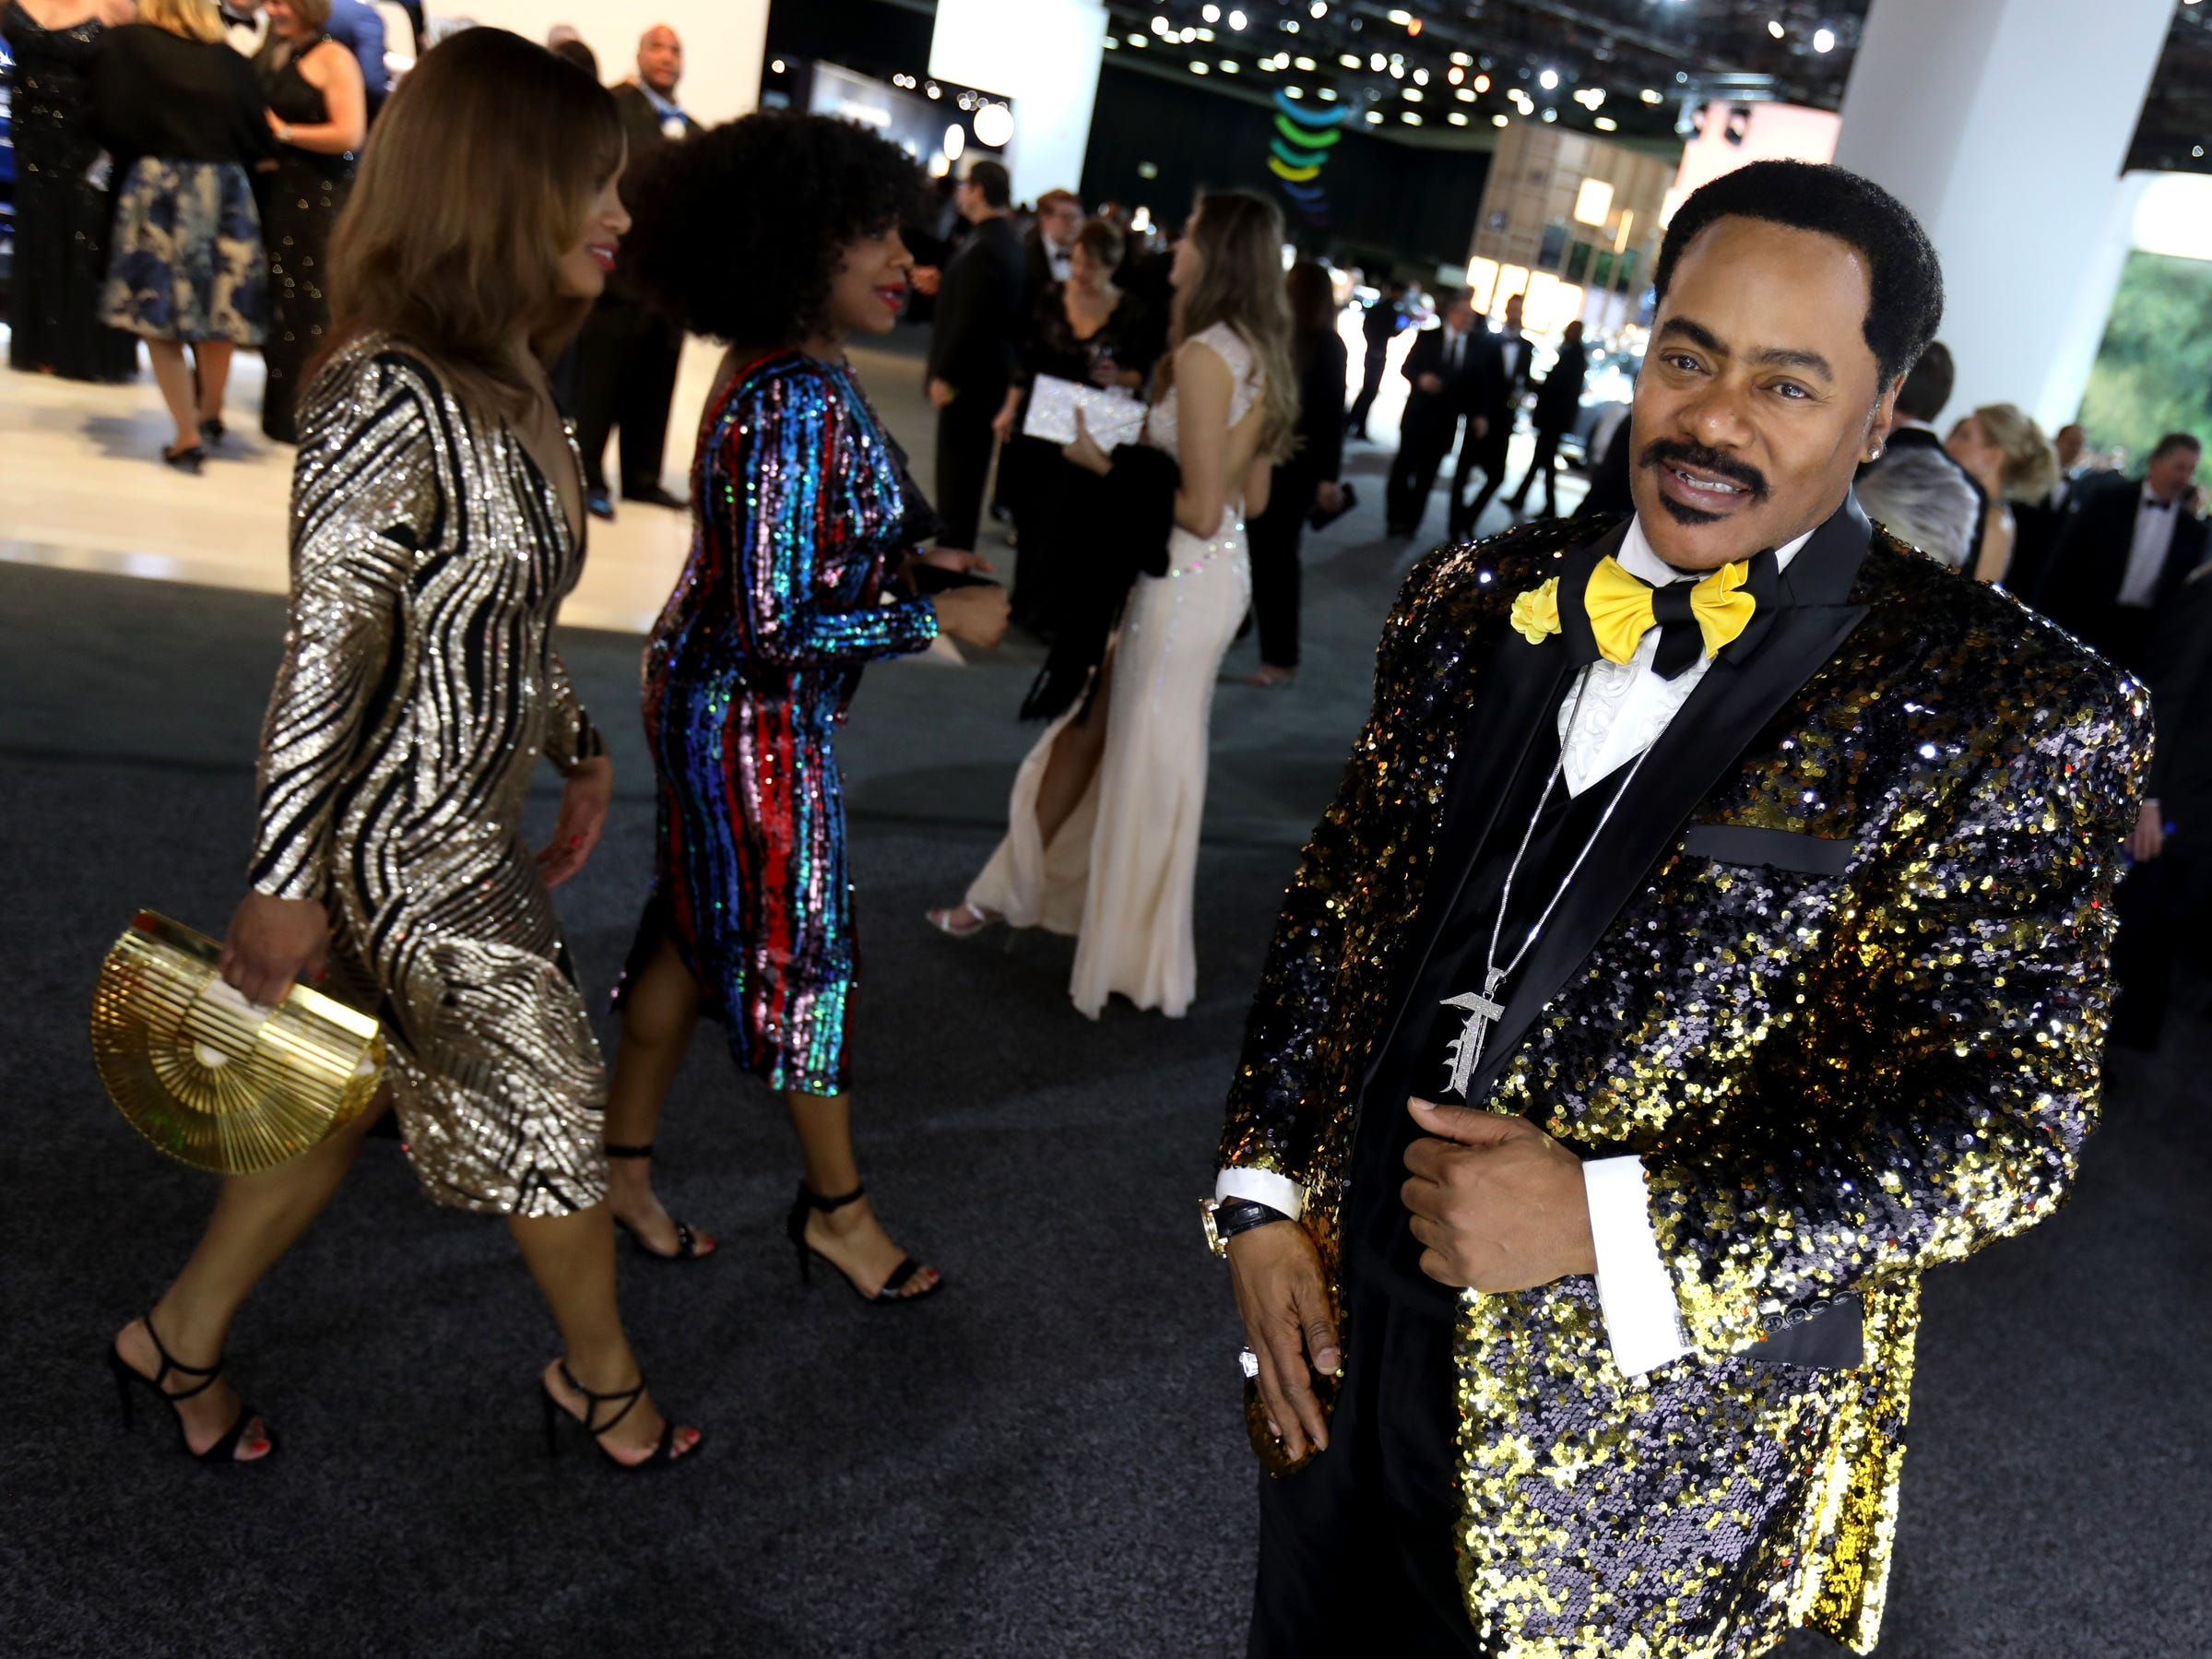 Thomas Bolden of Detroit chose a gold and black sequined jacket to wear during the 2019 North American International Auto Show Charity Preview at Cobo Center in Detroit on Friday, January 18, 2019.